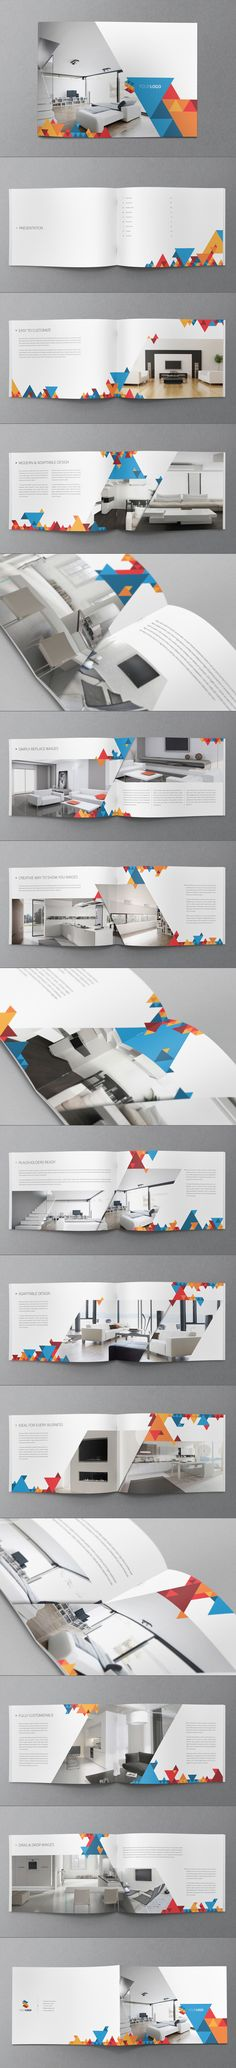 Modern Geometric Brochure by Abra Design, via Behance